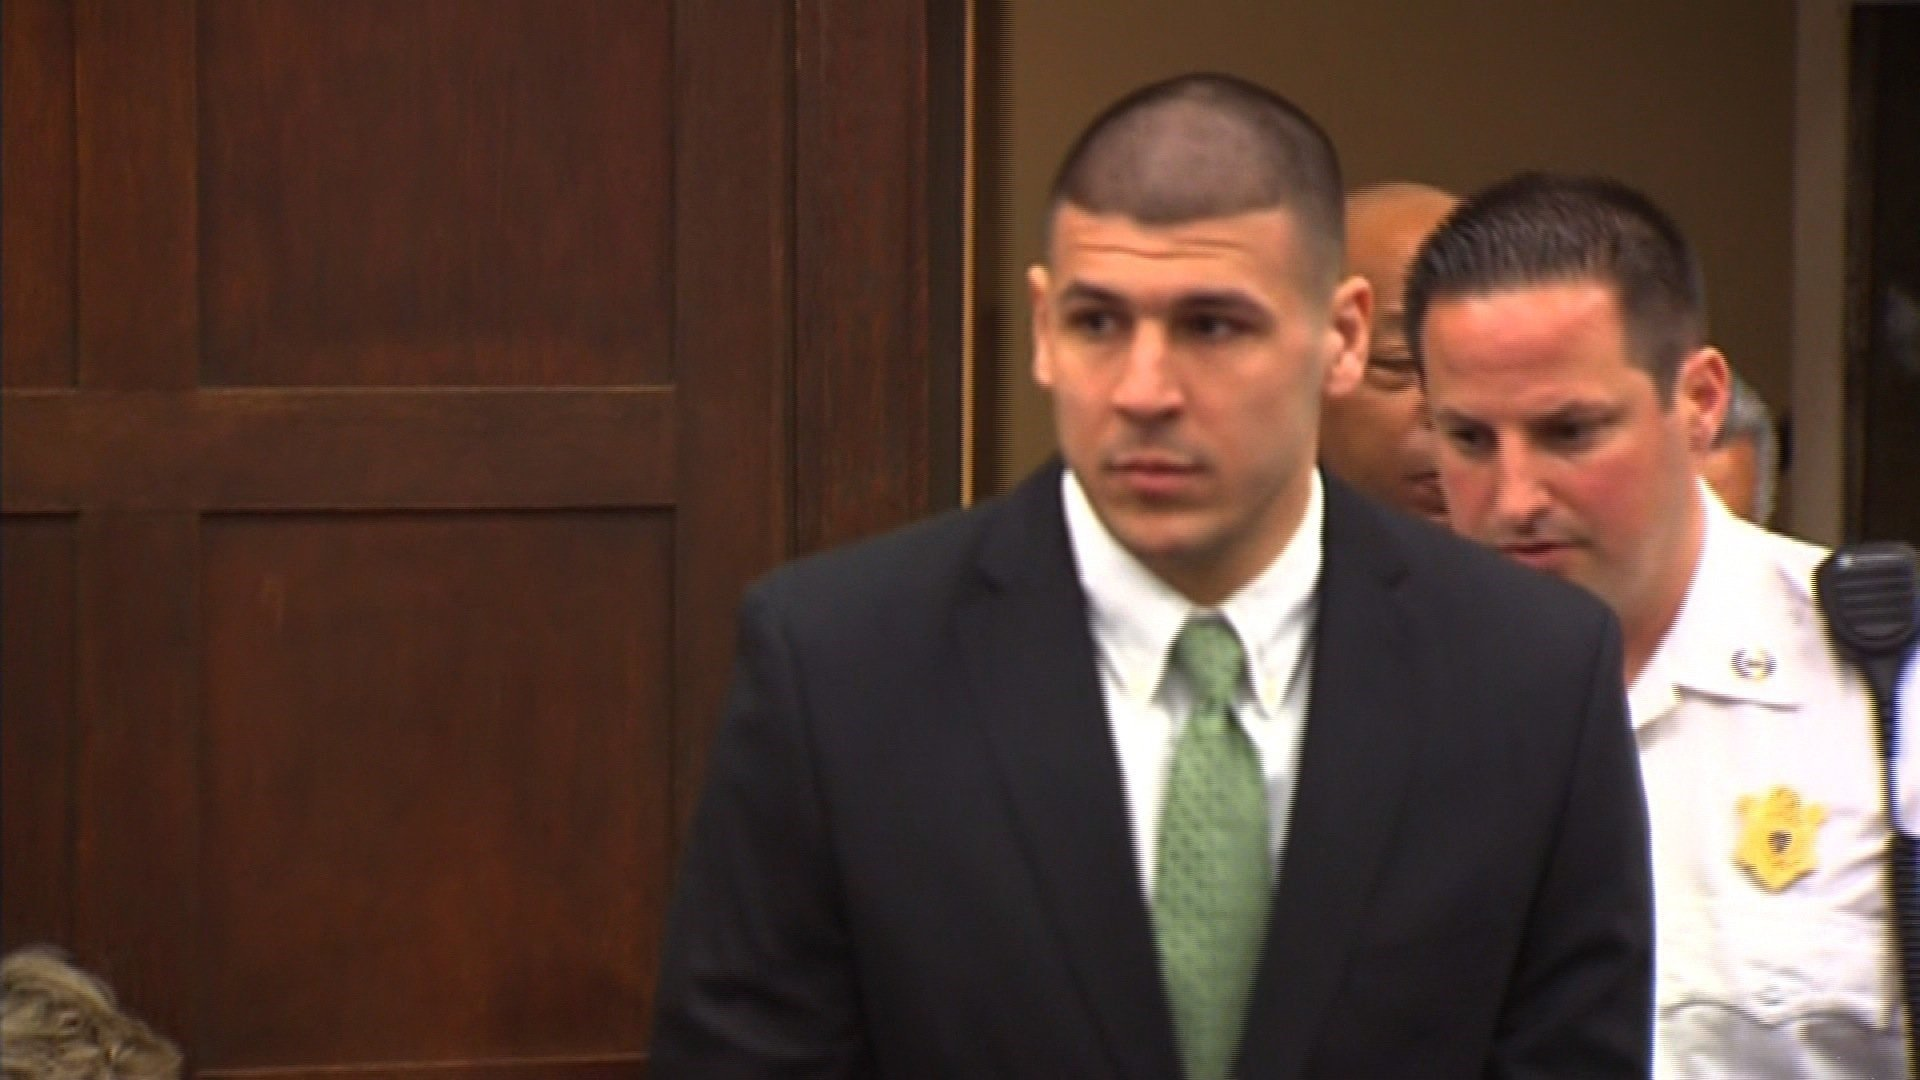 Aaron Hernandez was a star player for the New England Patriots when he was arrested in 2013 for the murder of Odin Lloyd. (File Photo)